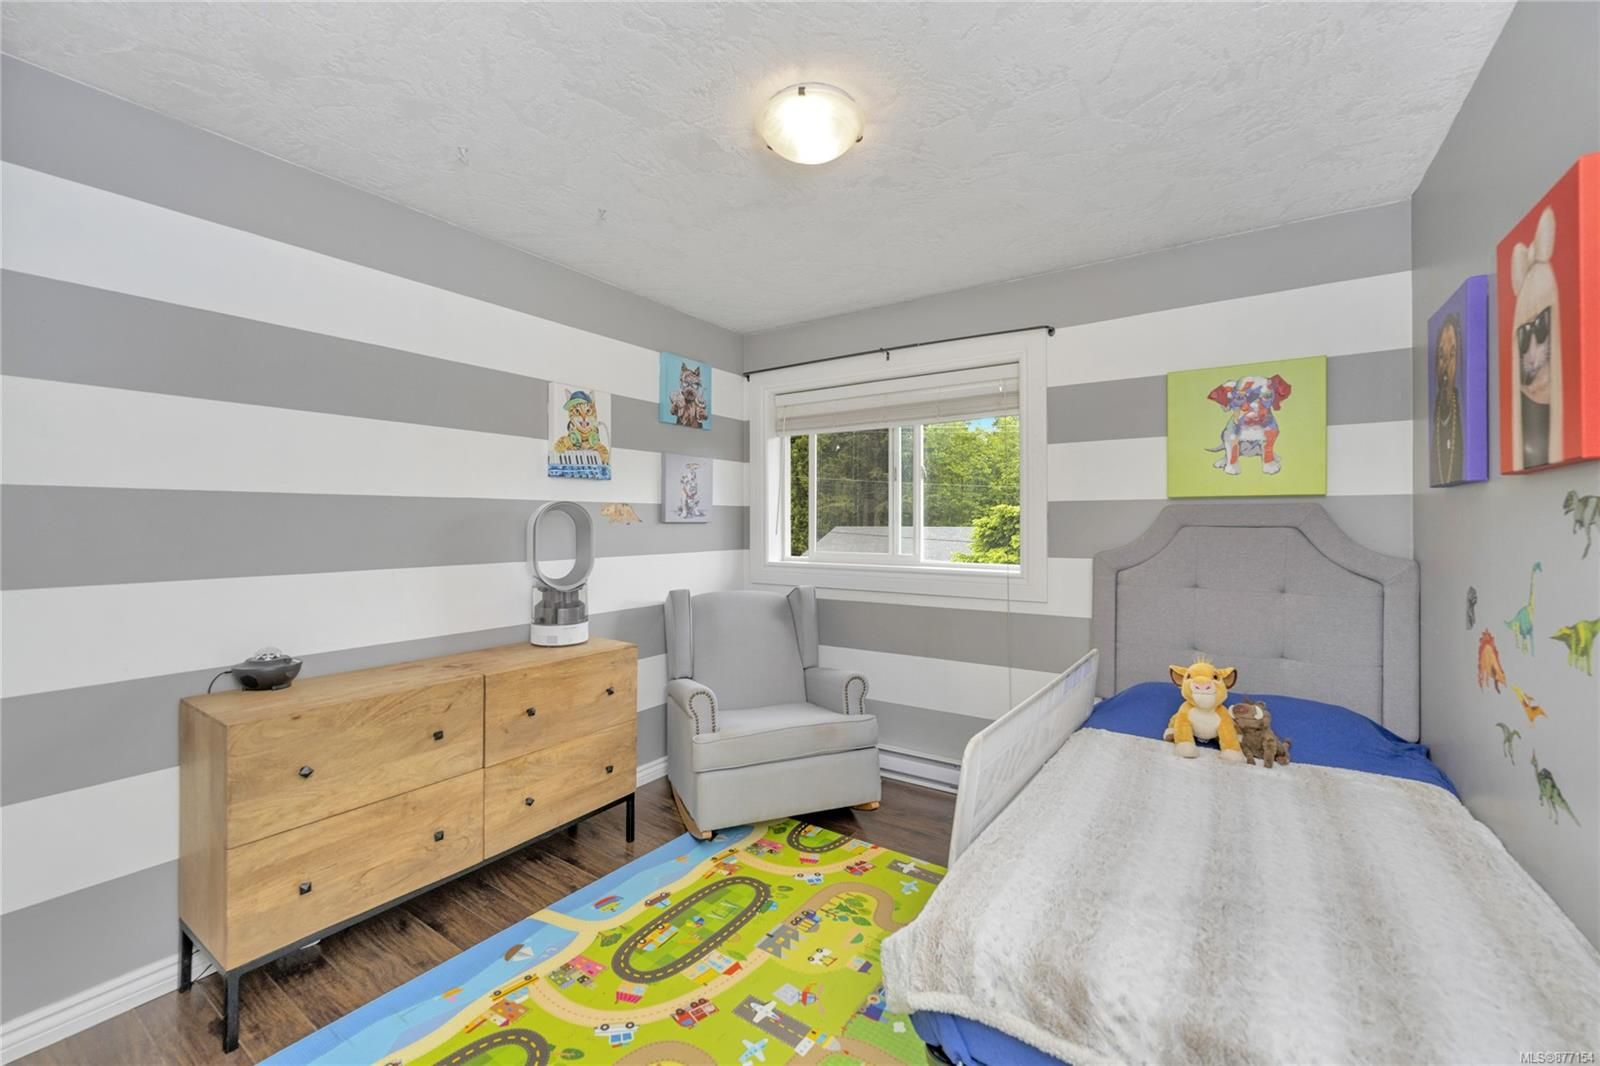 Photo 24: Photos: 2376 Terrace Rd in : ML Shawnigan House for sale (Malahat & Area)  : MLS®# 877154